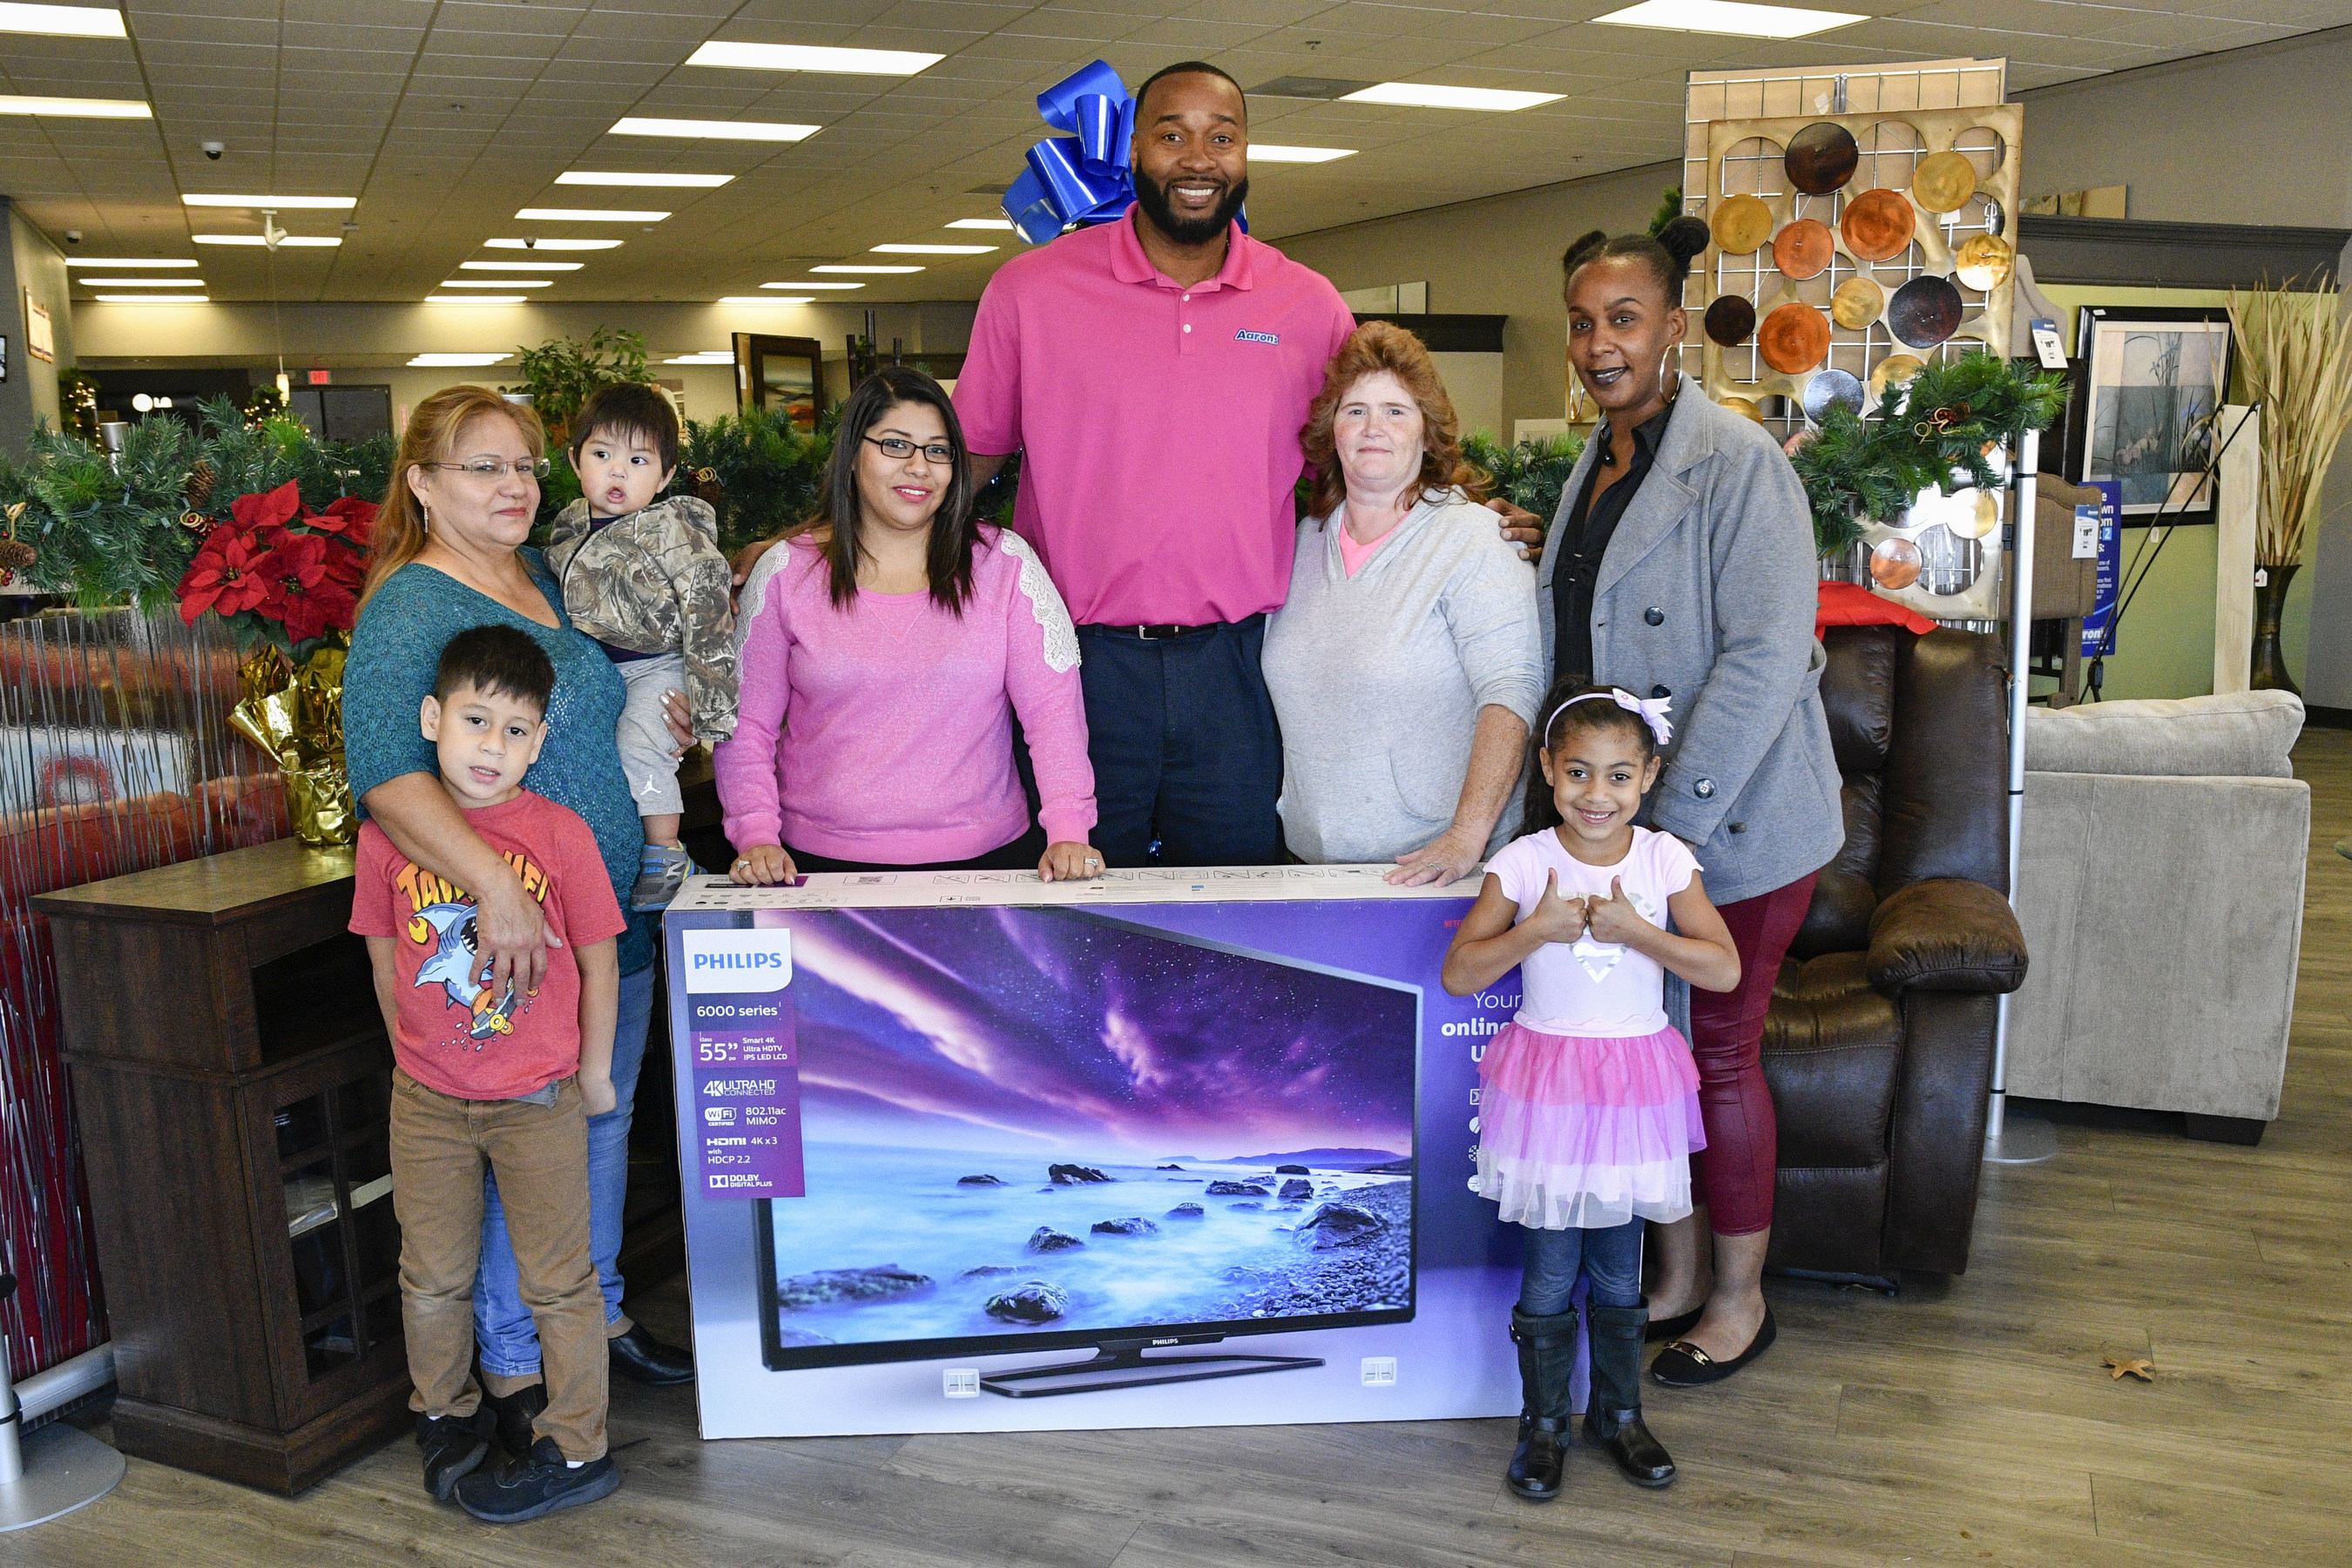 "IMAGE DISTRIBUTED FOR AARON'S, INC - Aaron's regional manager Tyrone Washington, center, surprised loyal customers (L - R) Aurora Moreno, her daughter and grandchildren, Melissa Neese and Salina Arnold with free 55"" Phillips Smart 4K UHD LED TVs at an Aaron's store on Monday, Nov. 21, 2016, in Atlanta, Ga. Aaron's kicked off a week-long Black Friday celebration today and also surprised loyal customers in Jacksonville, Fla., Memphis, Tenn. and Nashville, Tenn. with free 55"" Phillips TVs. (John Amis/AP Images for Aaron's, Inc.)"